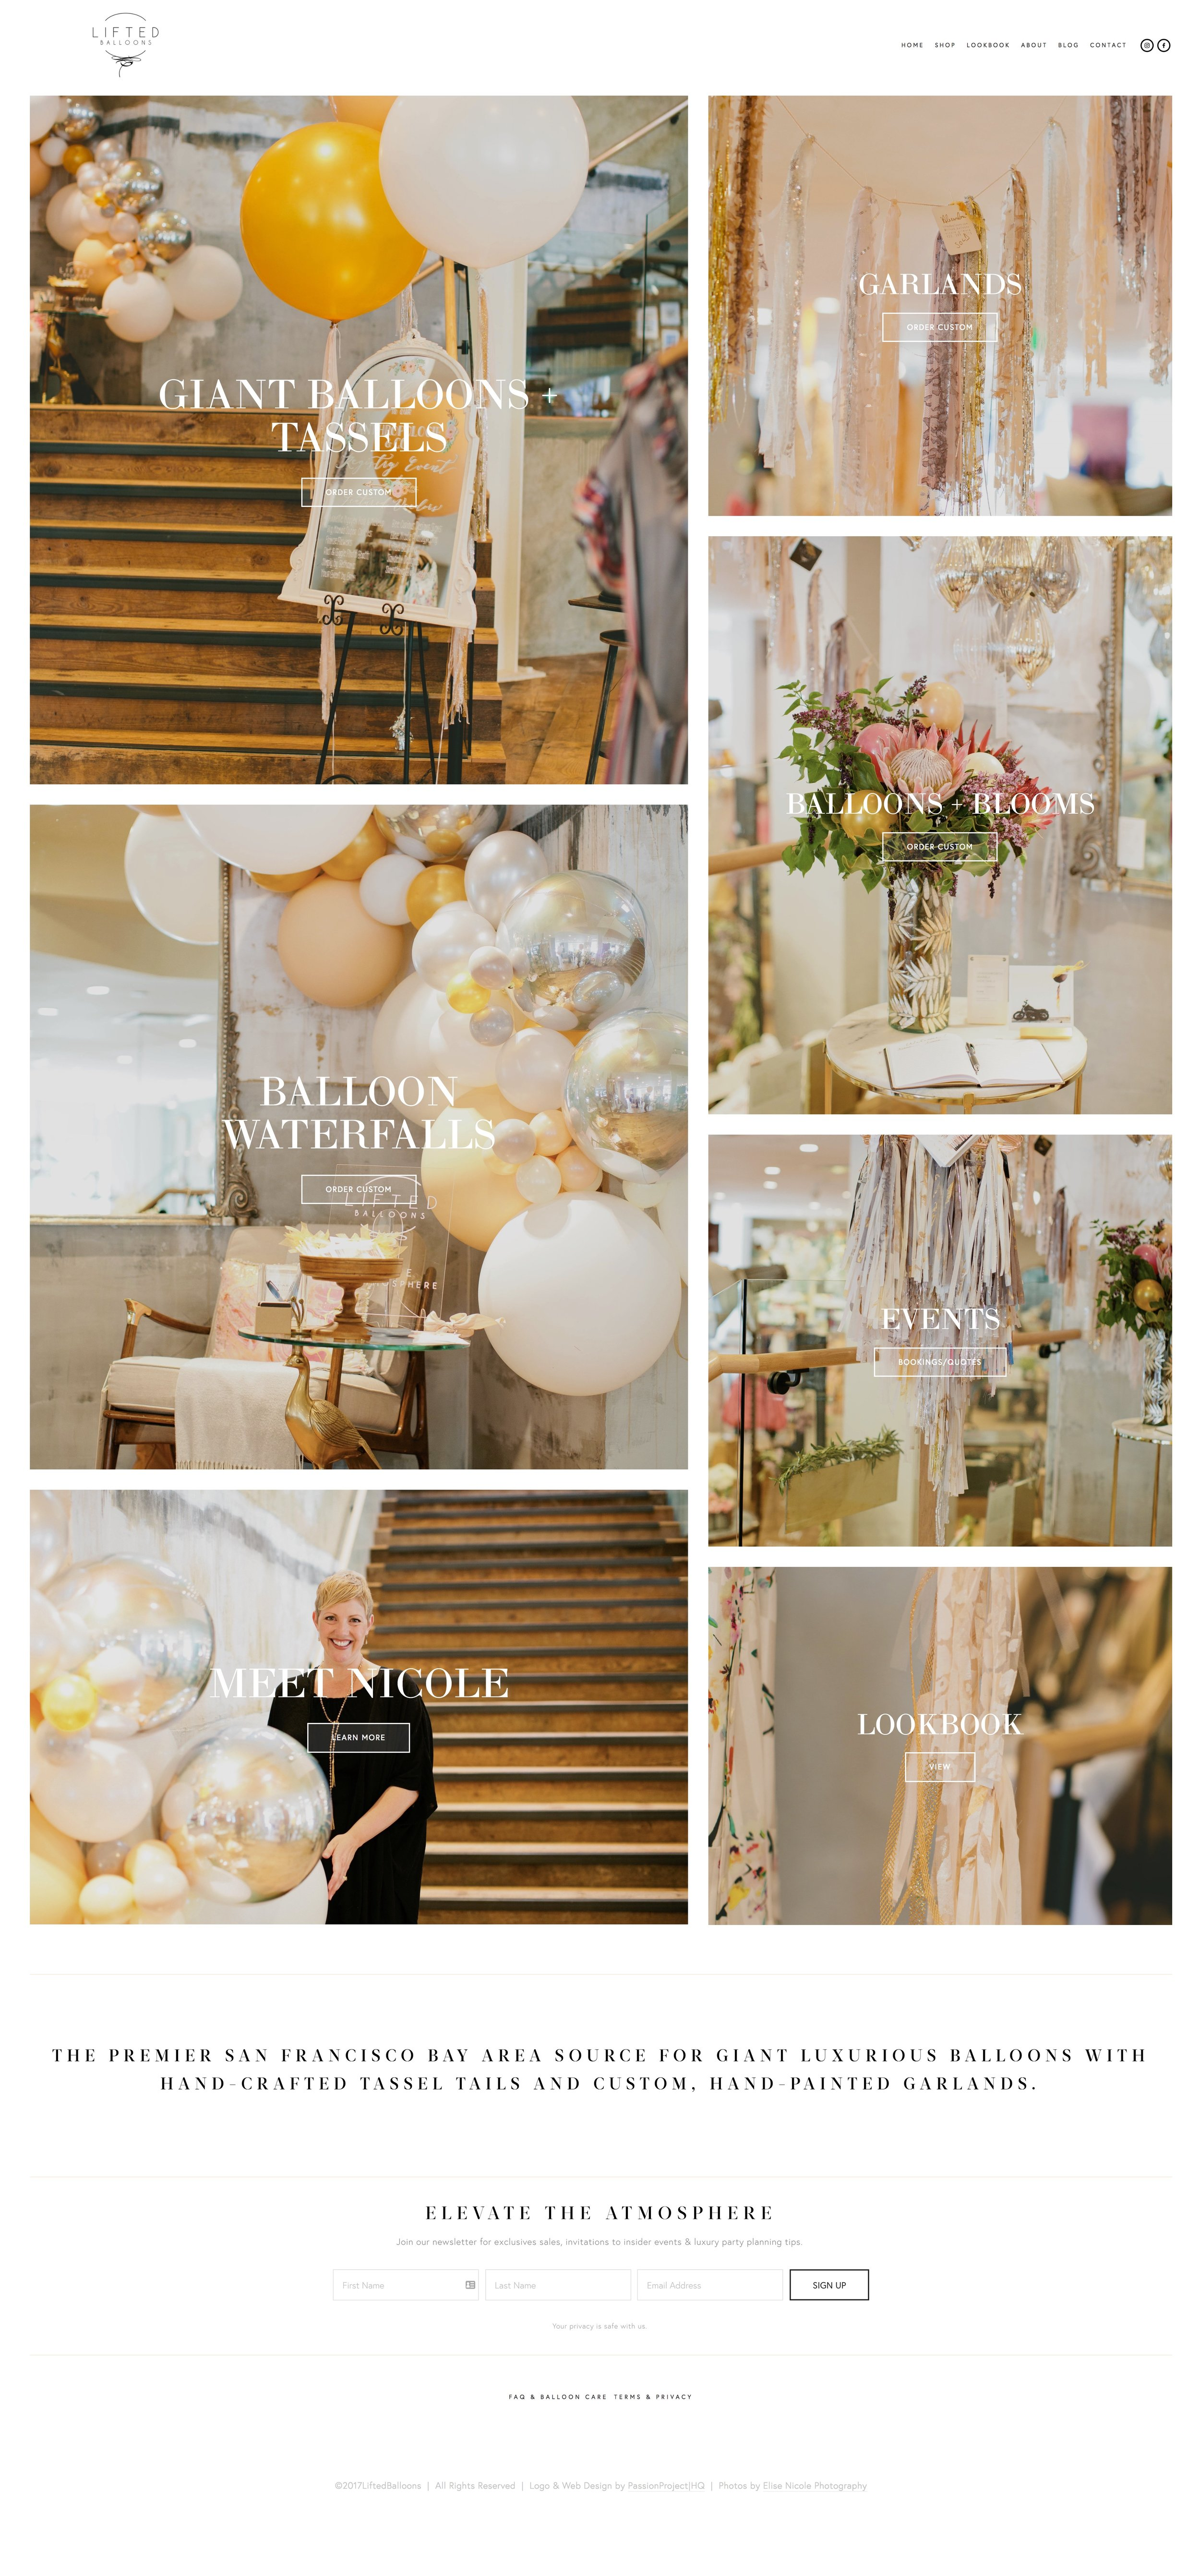 LIFTED.BALLOON passion project hq kimberly saquing nicole gilmore giant balloons logo design brand design website design.jpg